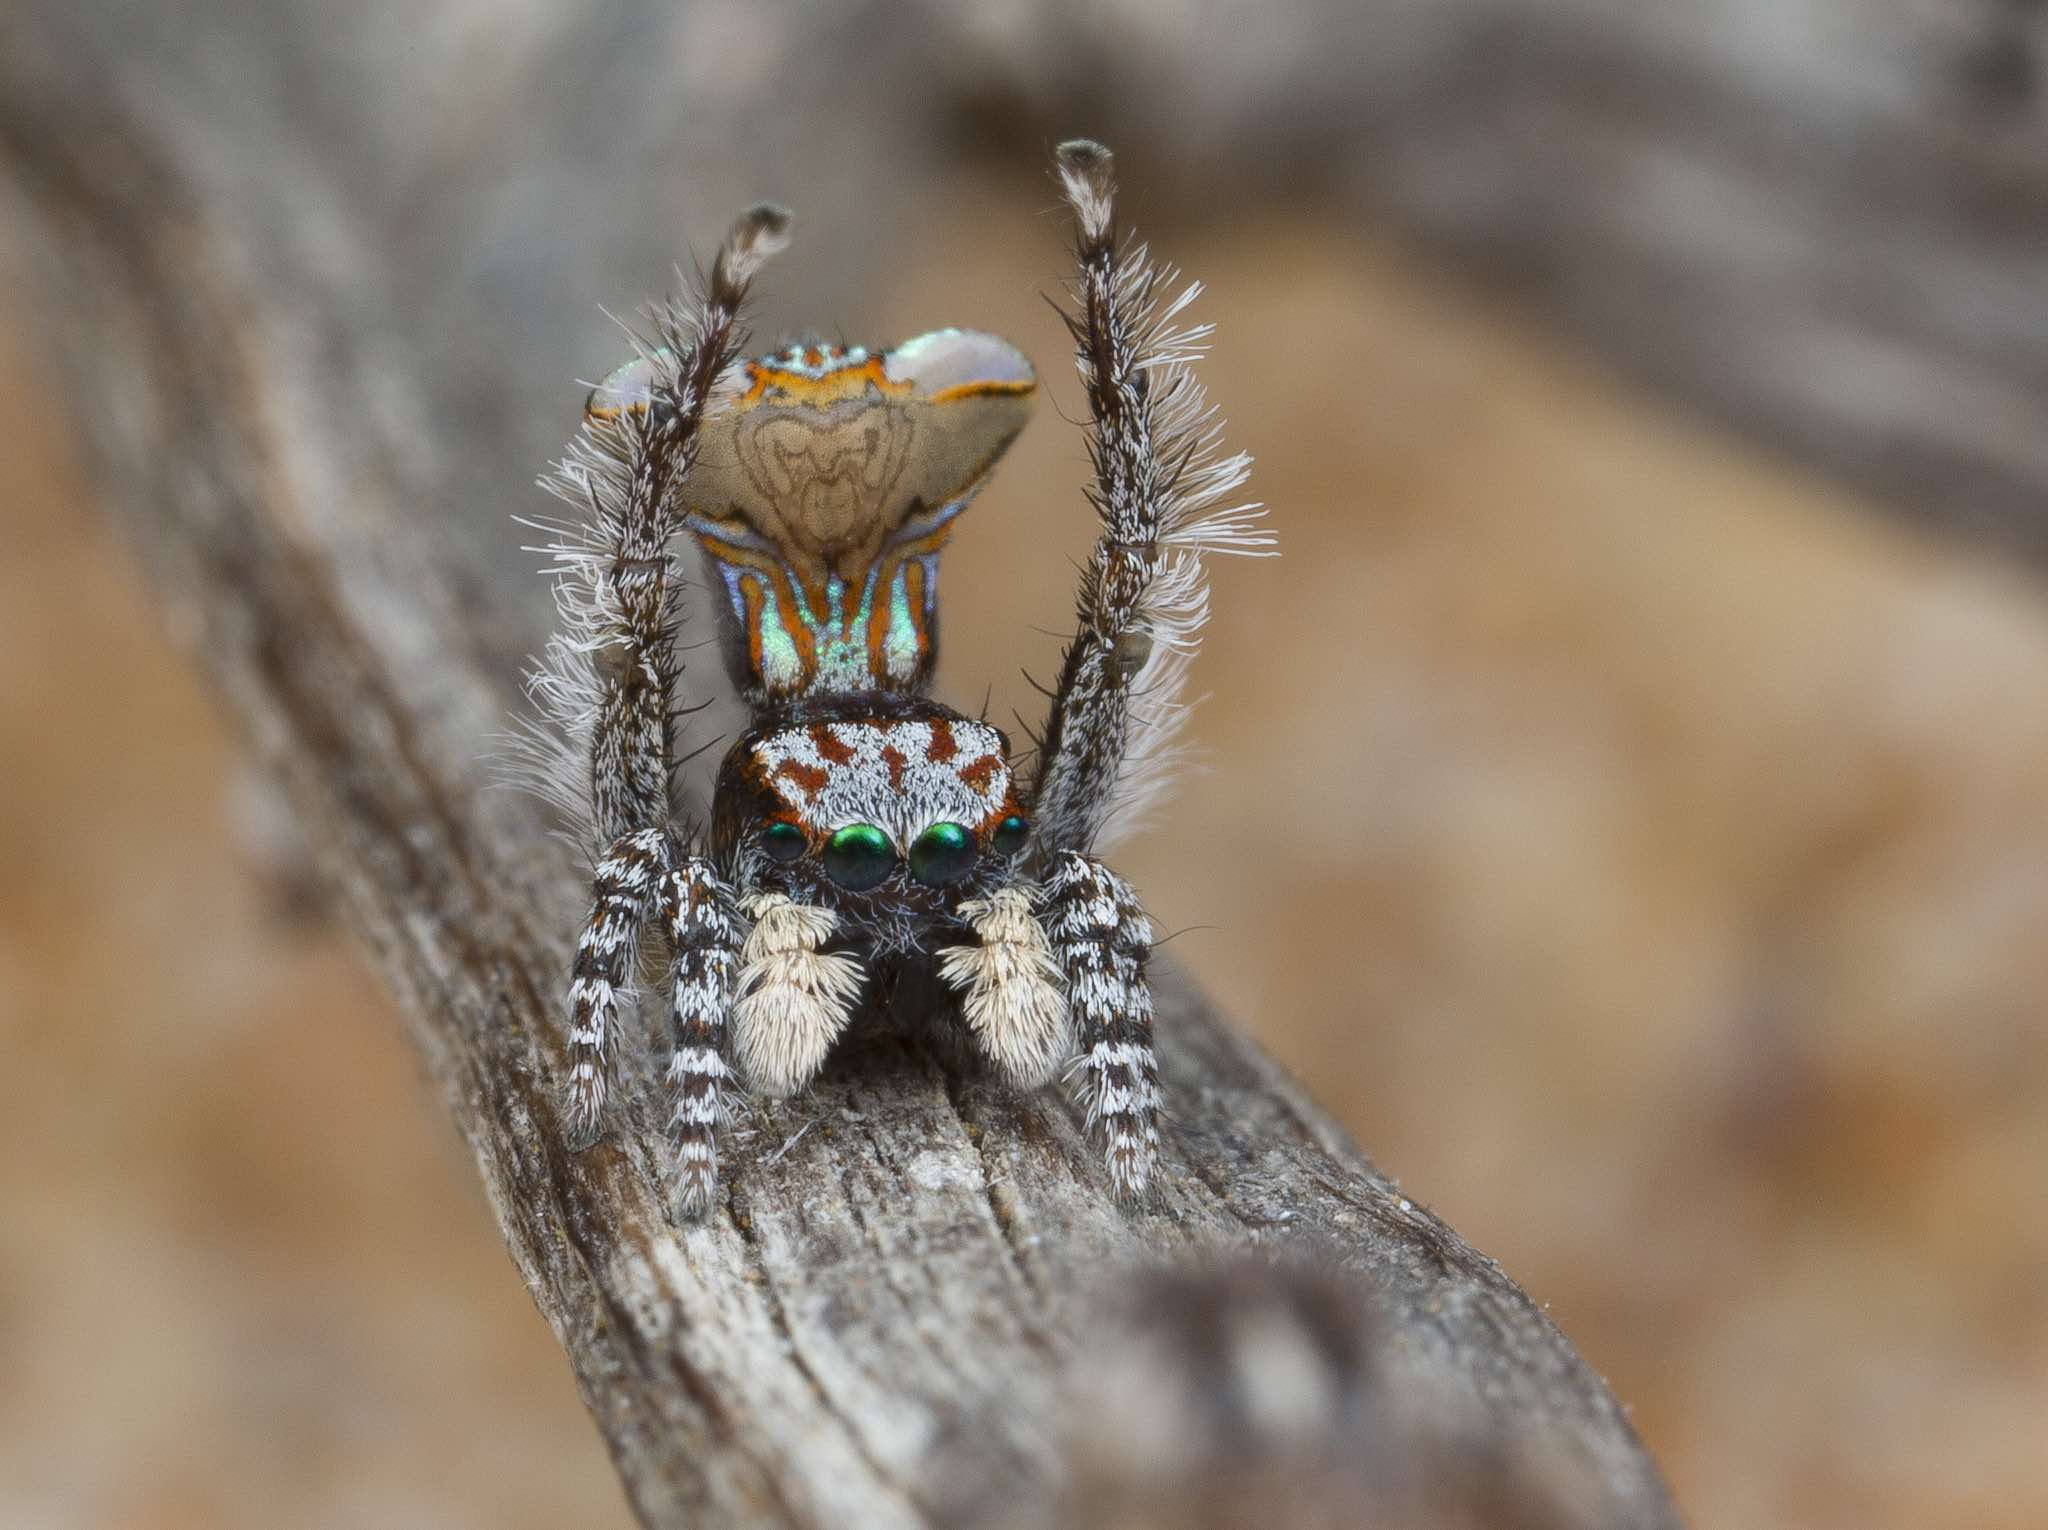 Newly discovered Maratus vespa is named after the patterns on its back that resembles a wasp. Photo by Jürgen C. Otto.